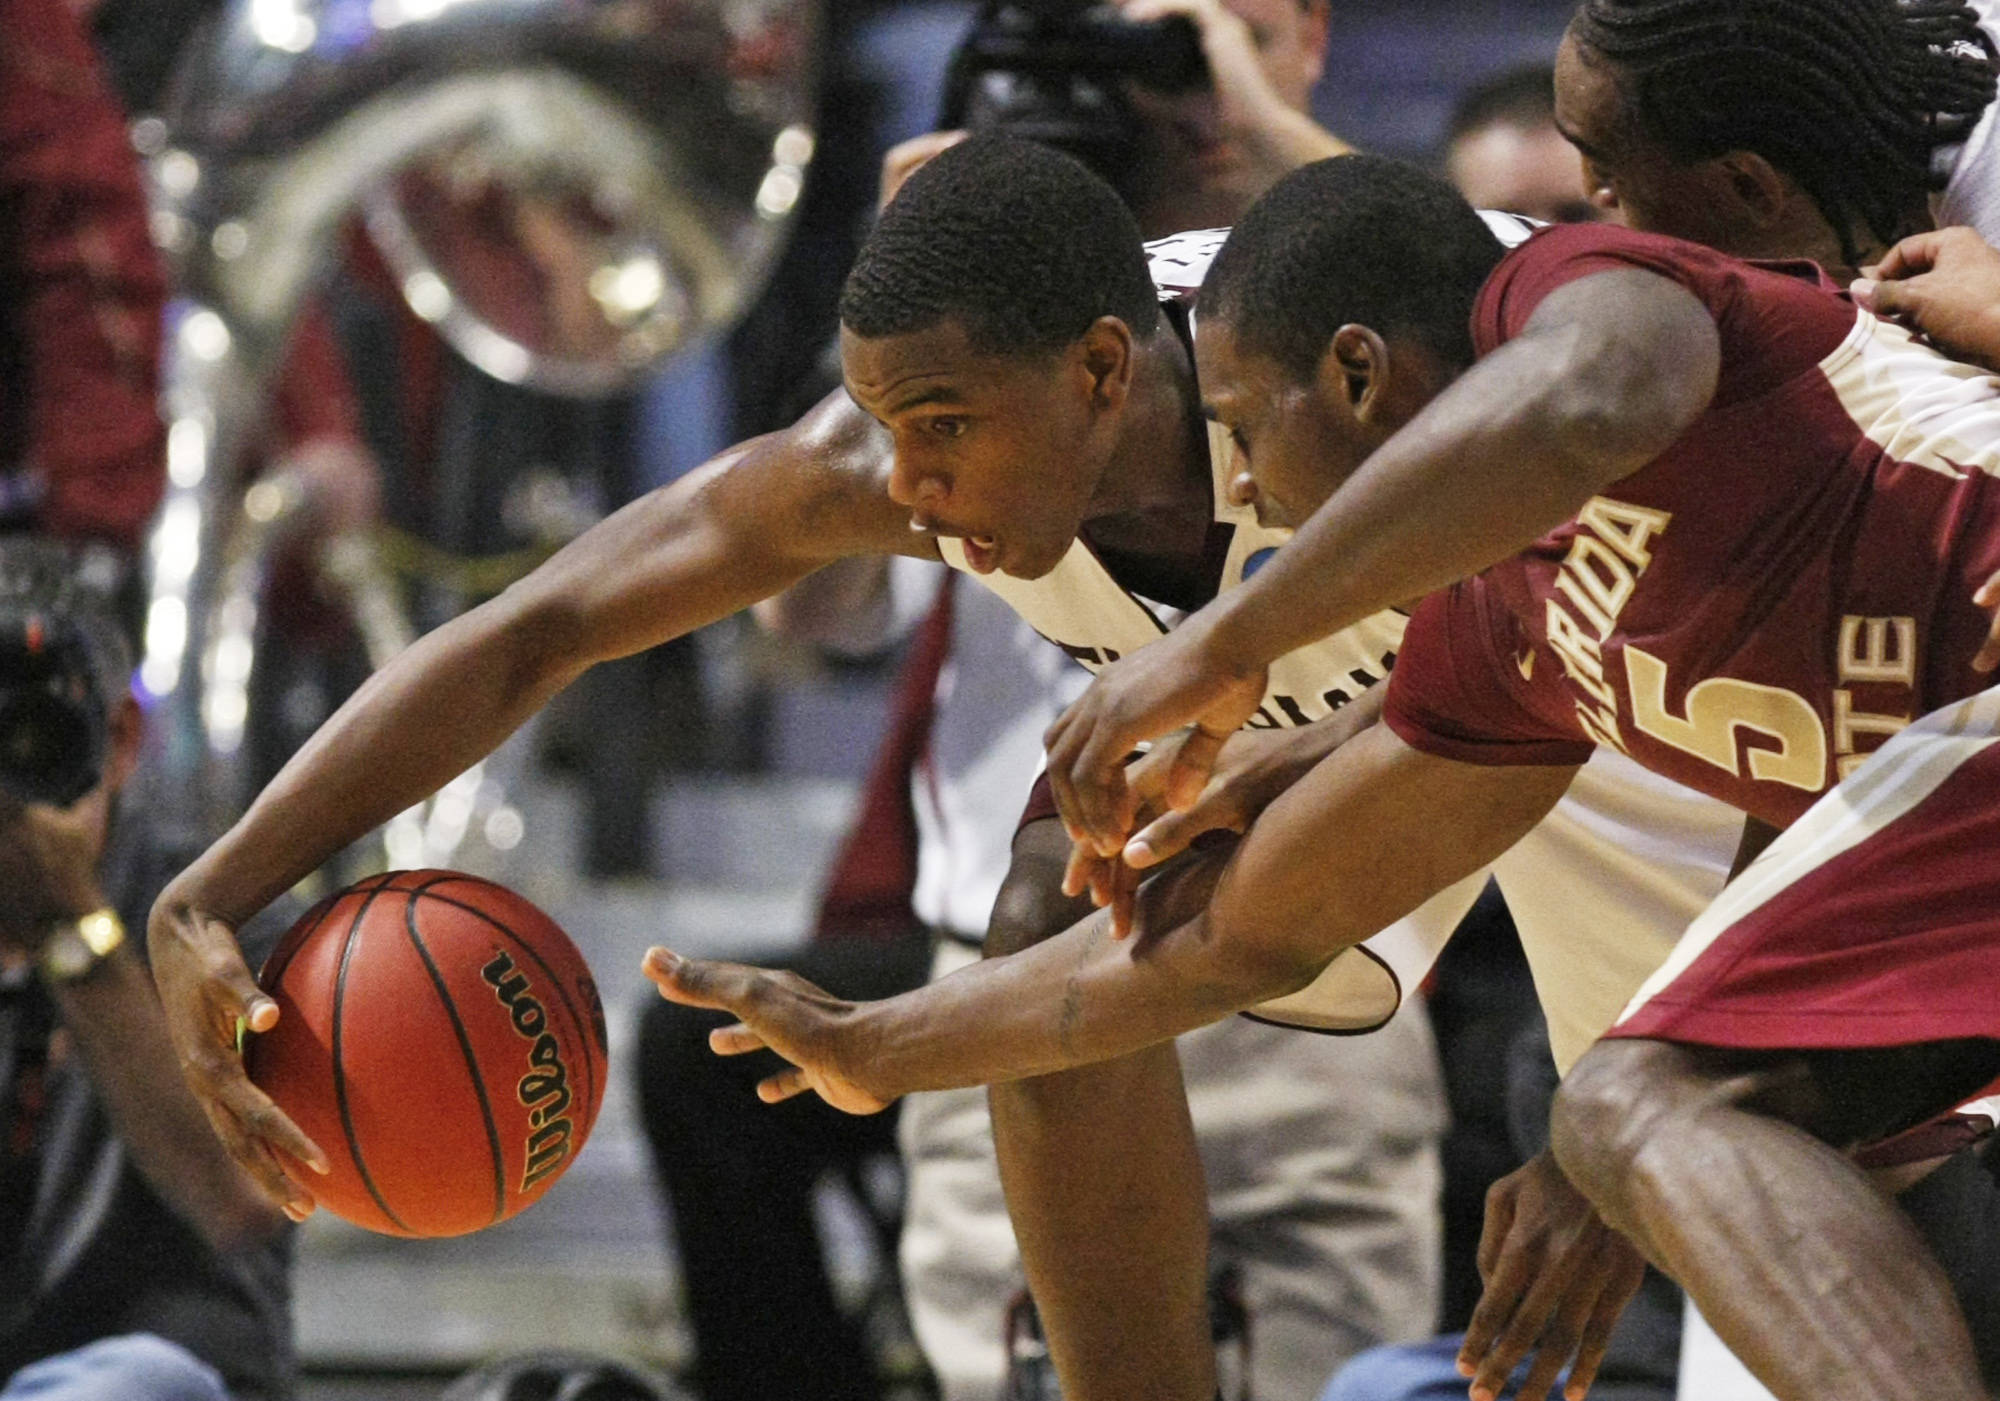 Texas A&M's Khris Middleton and Florida State's Bernard James scramble for a loose ball in the second half . (AP Photo/Charles Rex Arbogast)